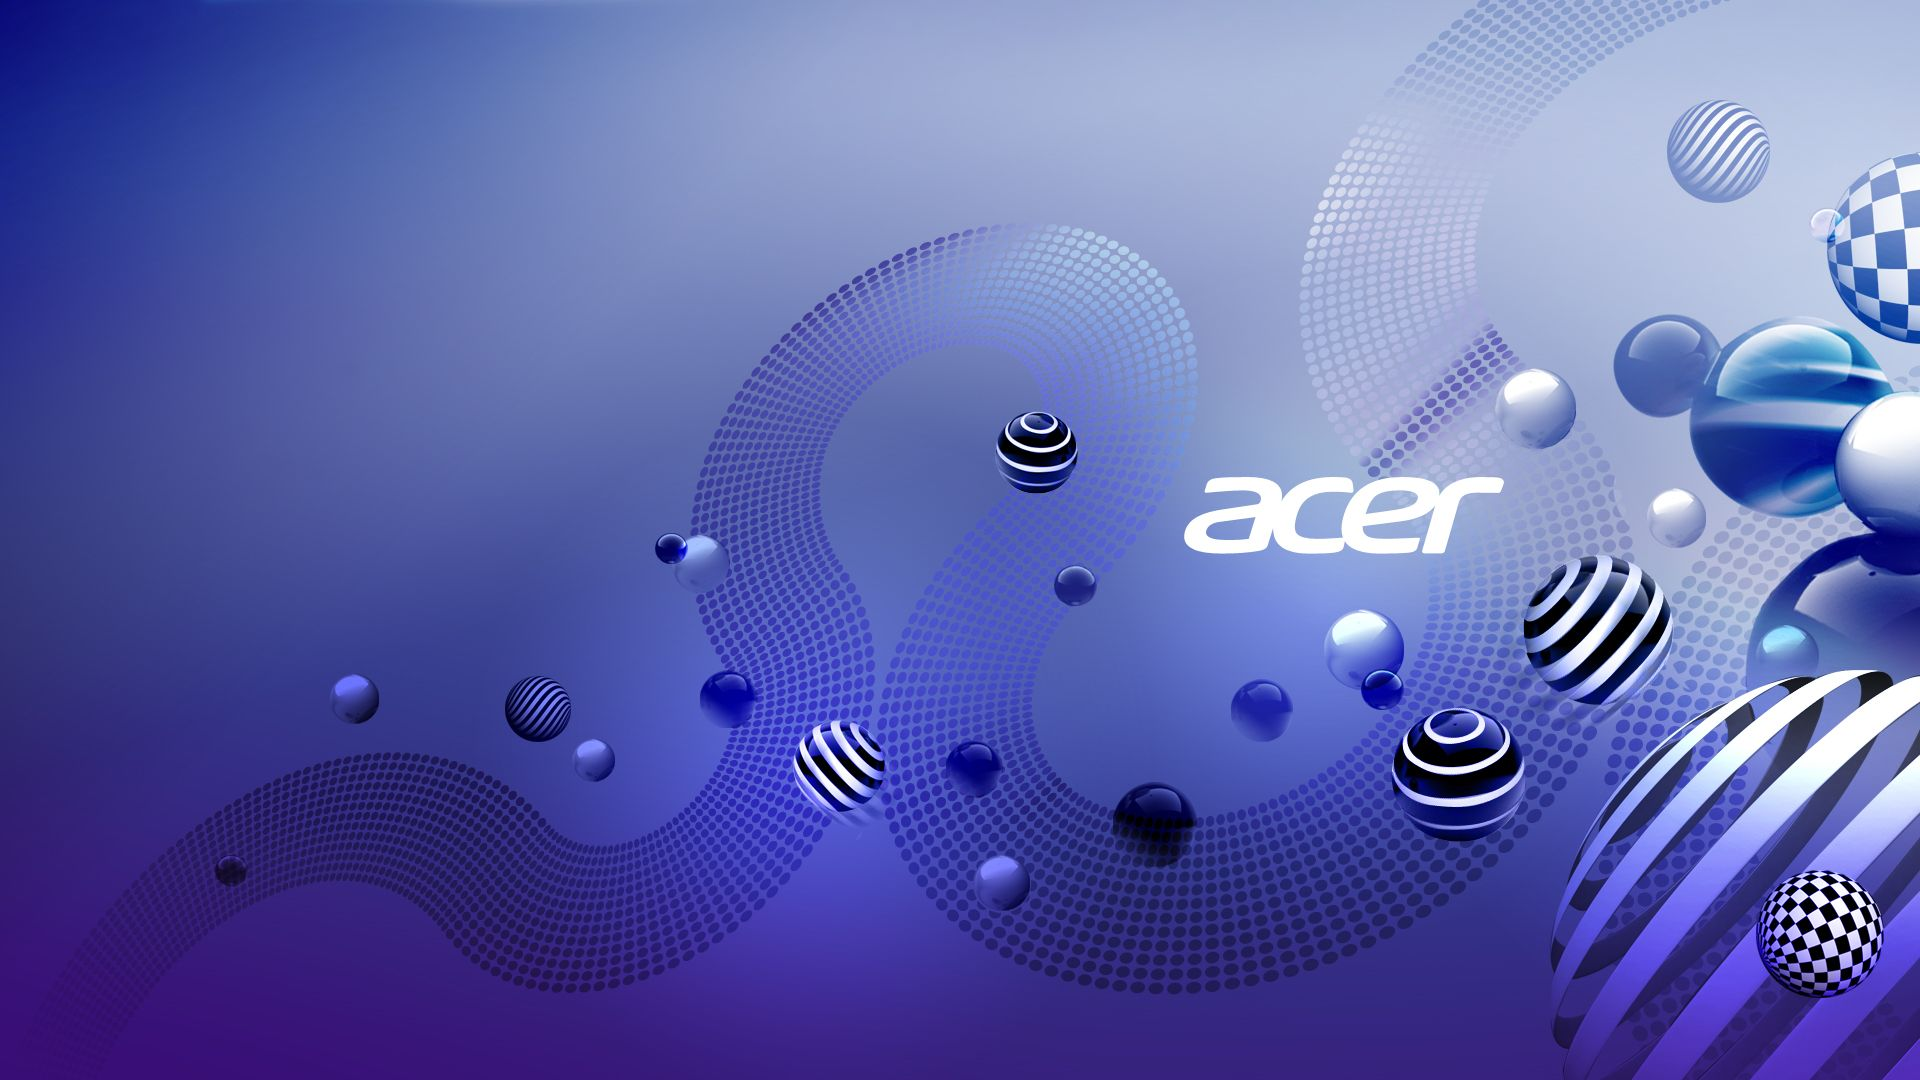 Acer picture